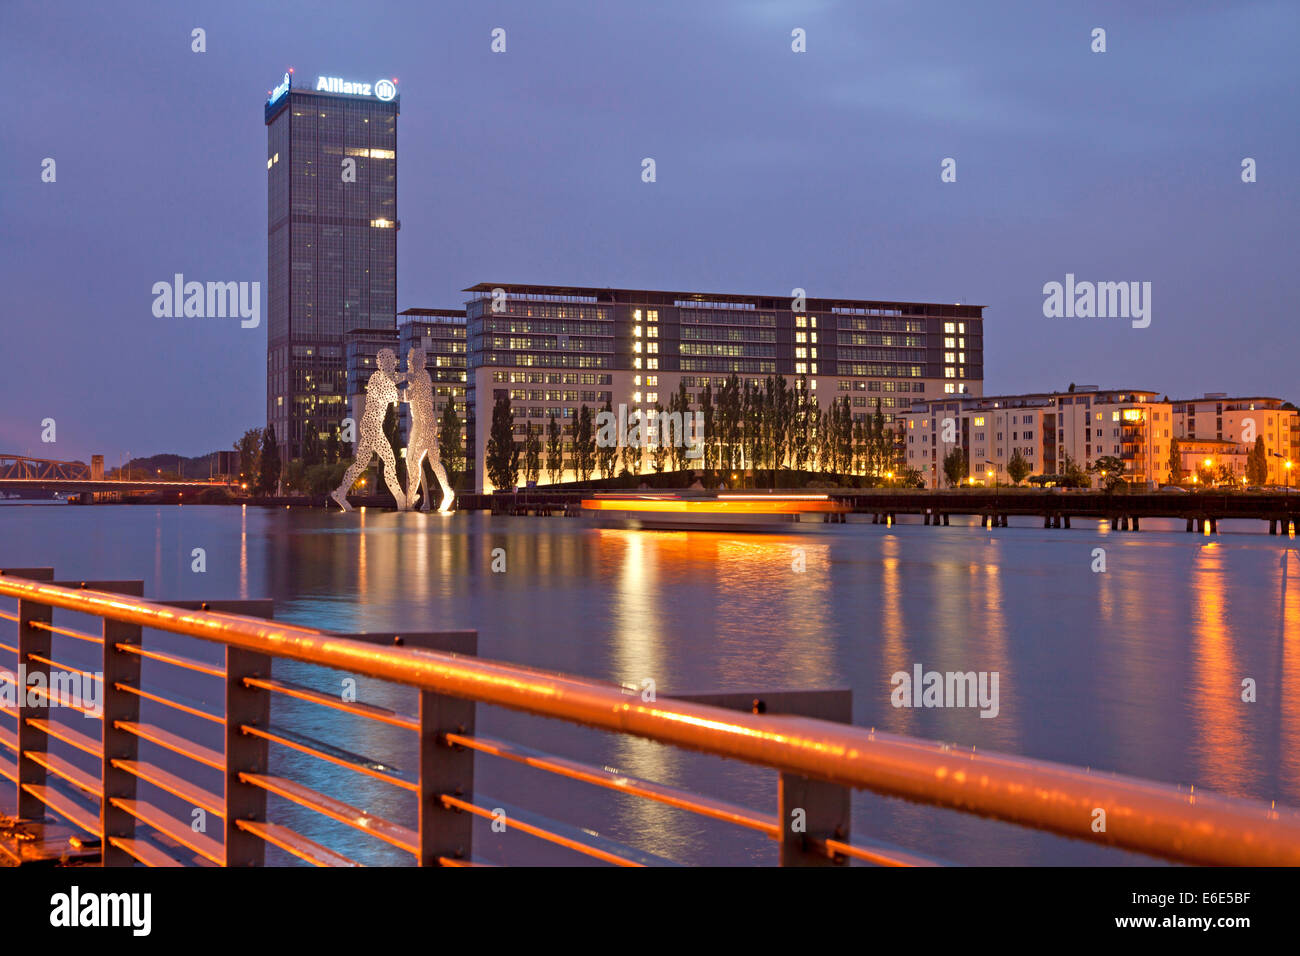 Molecule Man, artwork by American sculptor Jonathan Borofsky, and Treptowers building complex on the River Spree, - Stock Image